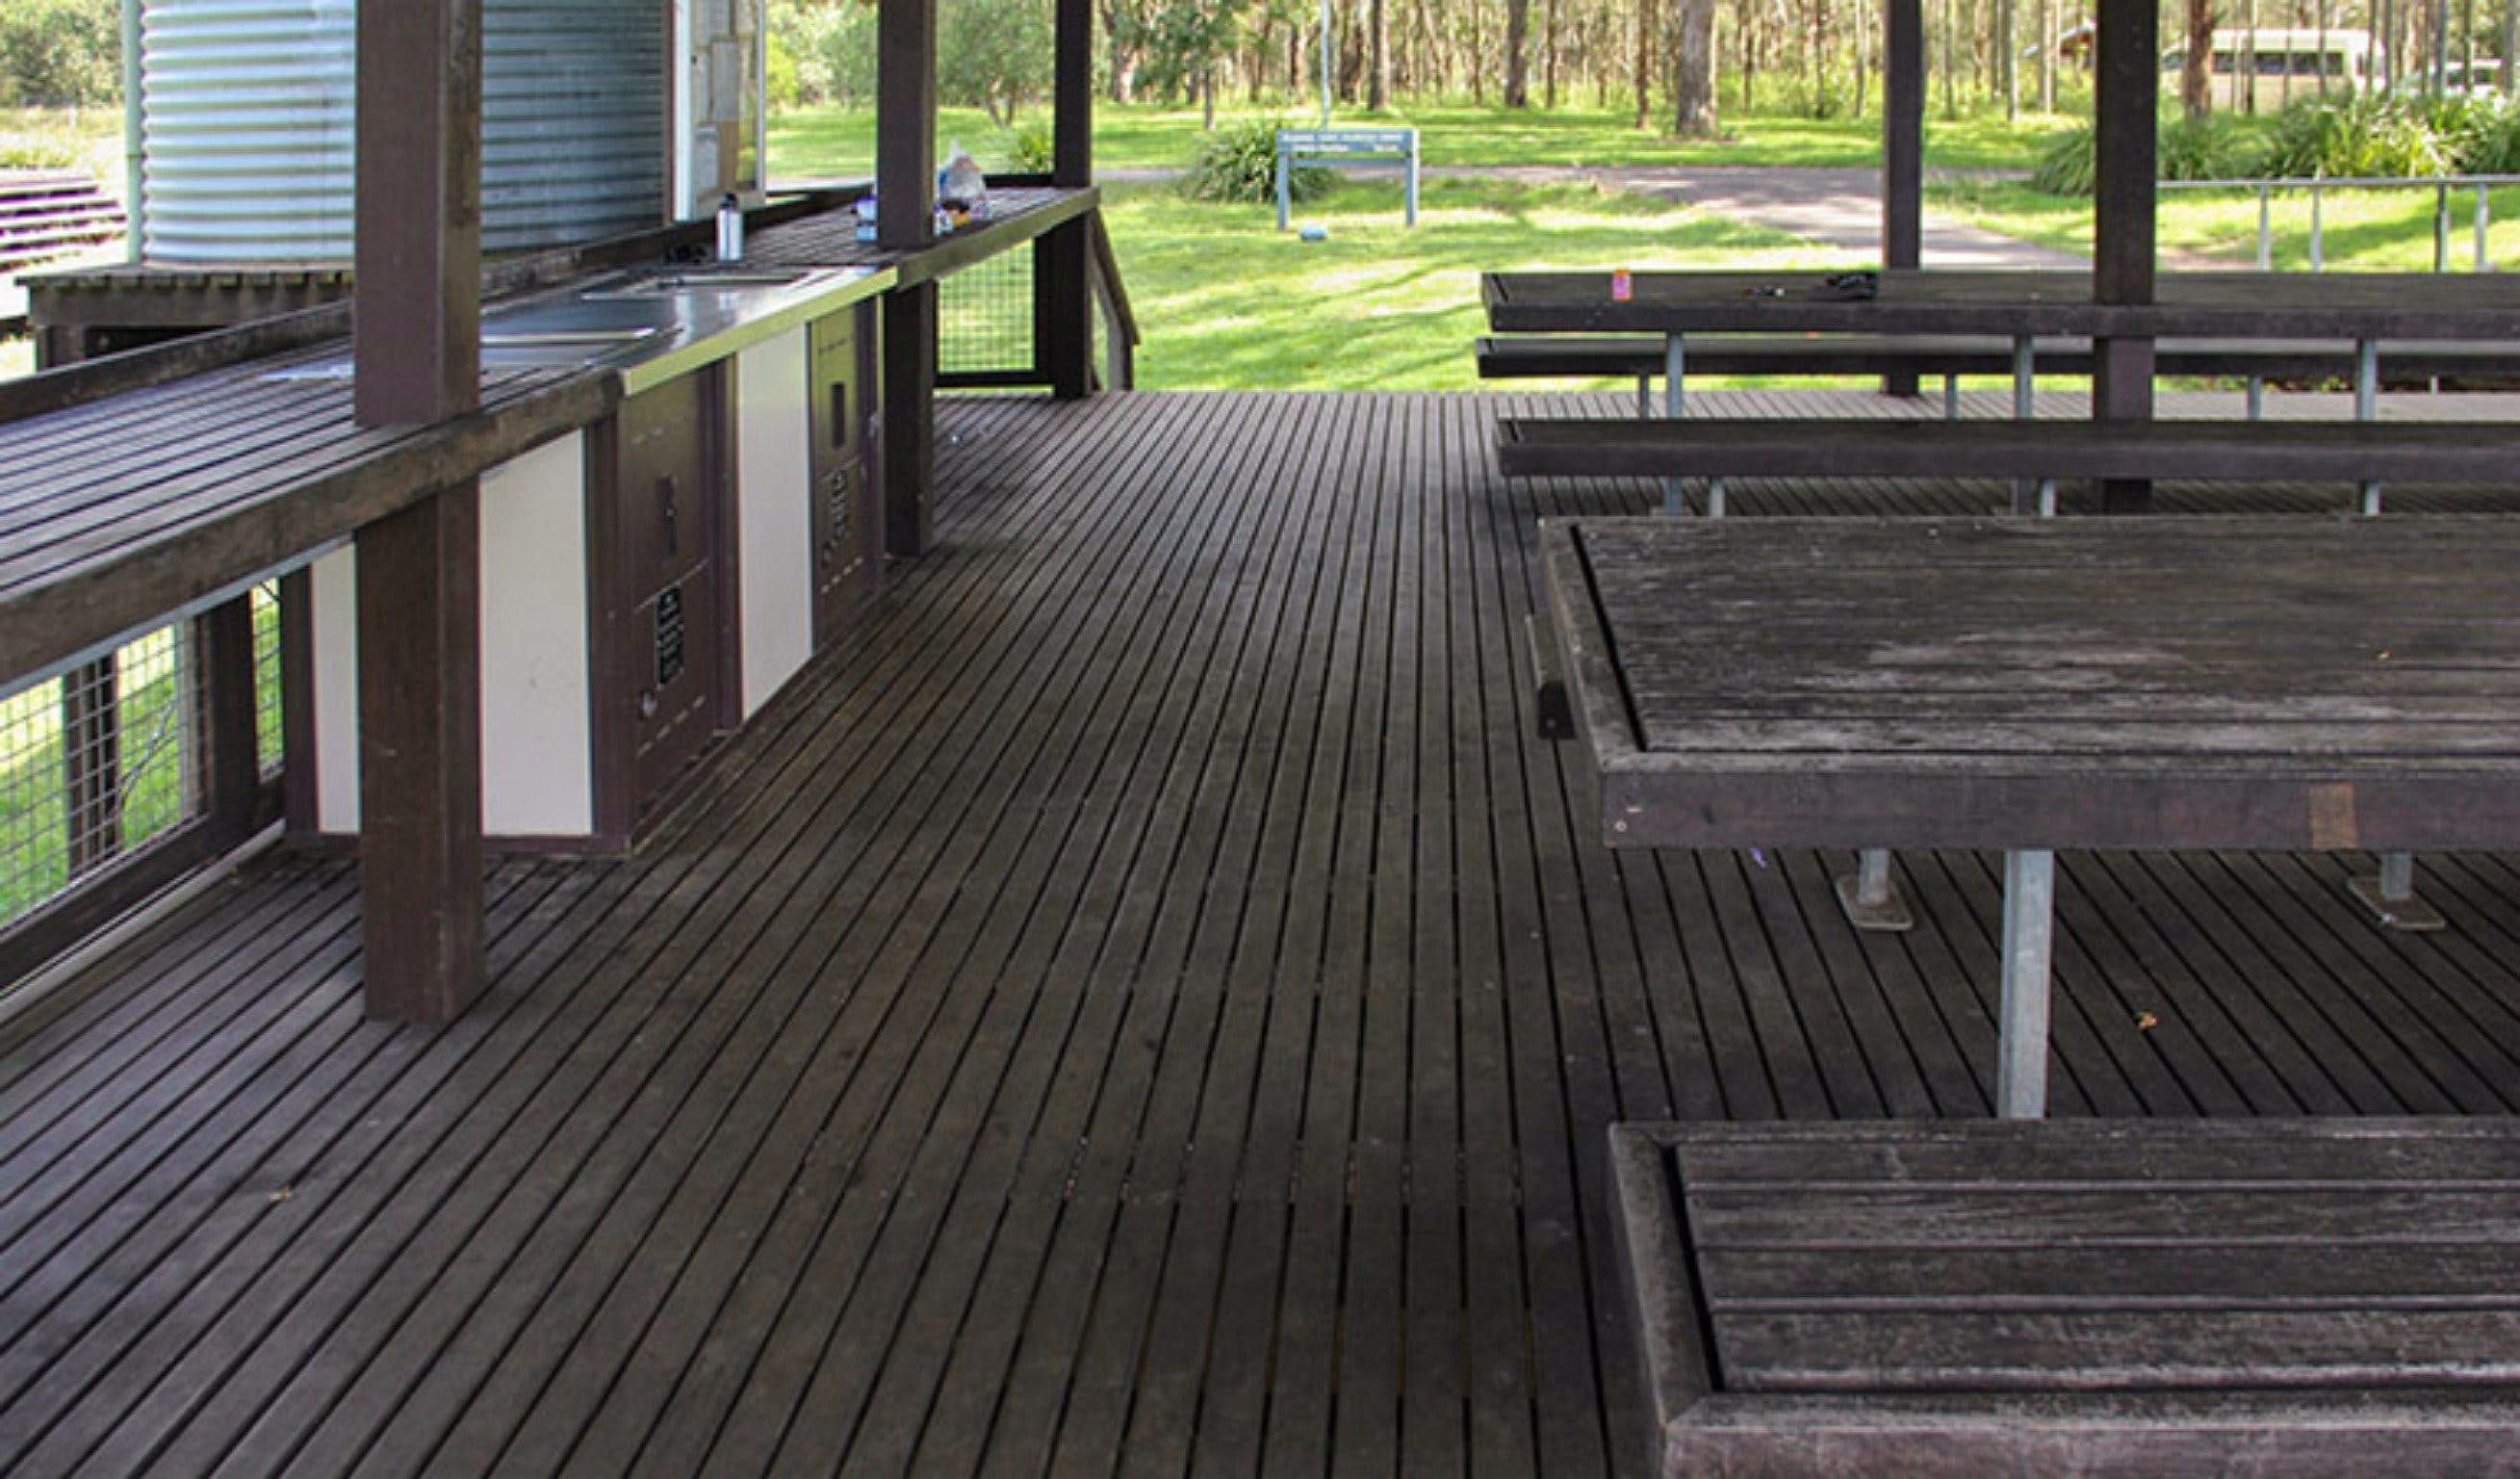 Crebra Pavilion - Accommodation in Bendigo